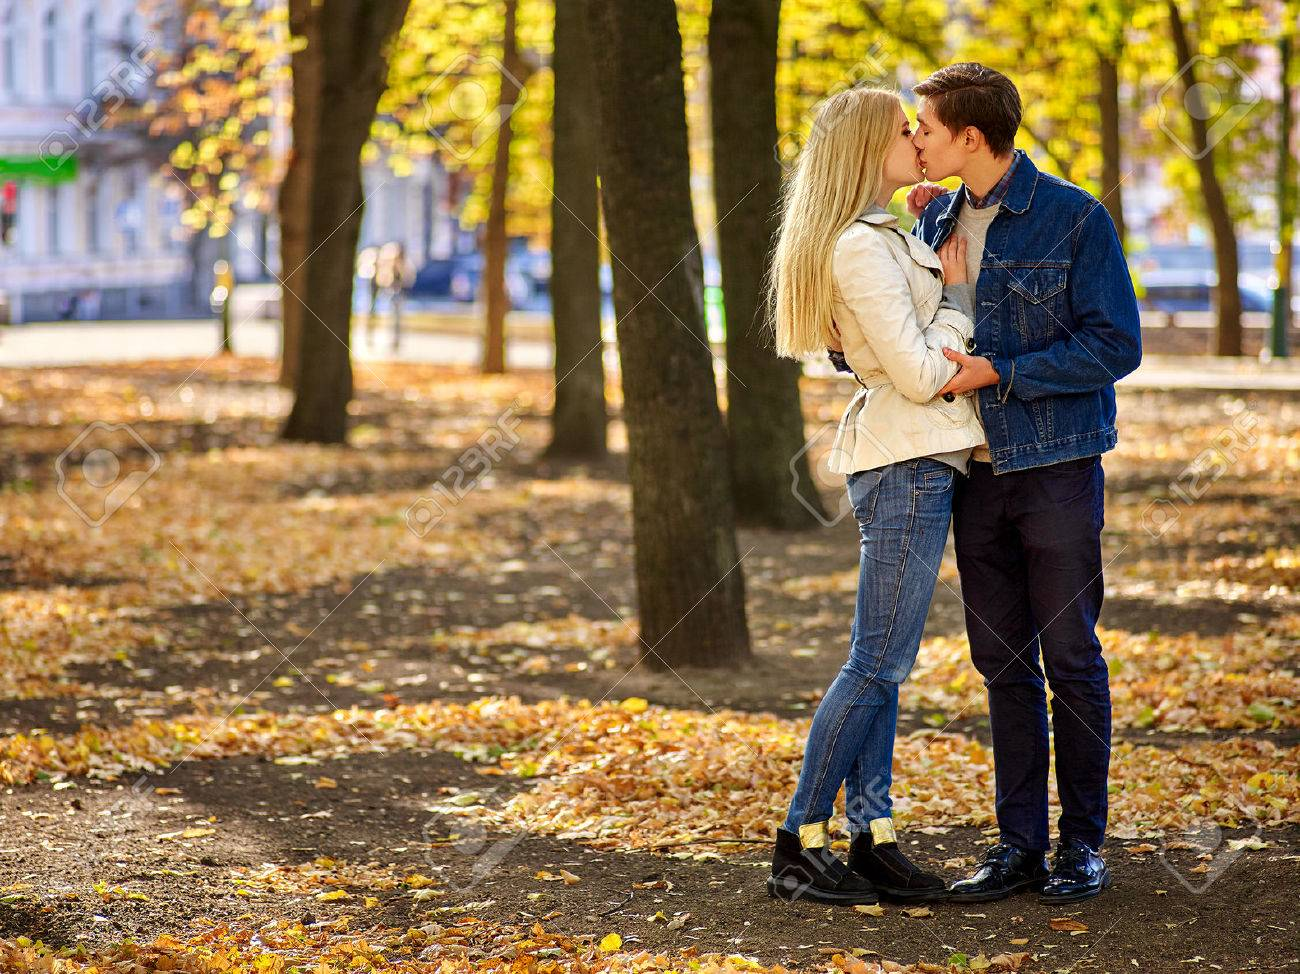 Young couple hugging and flirting in park. Full height. - 47419270